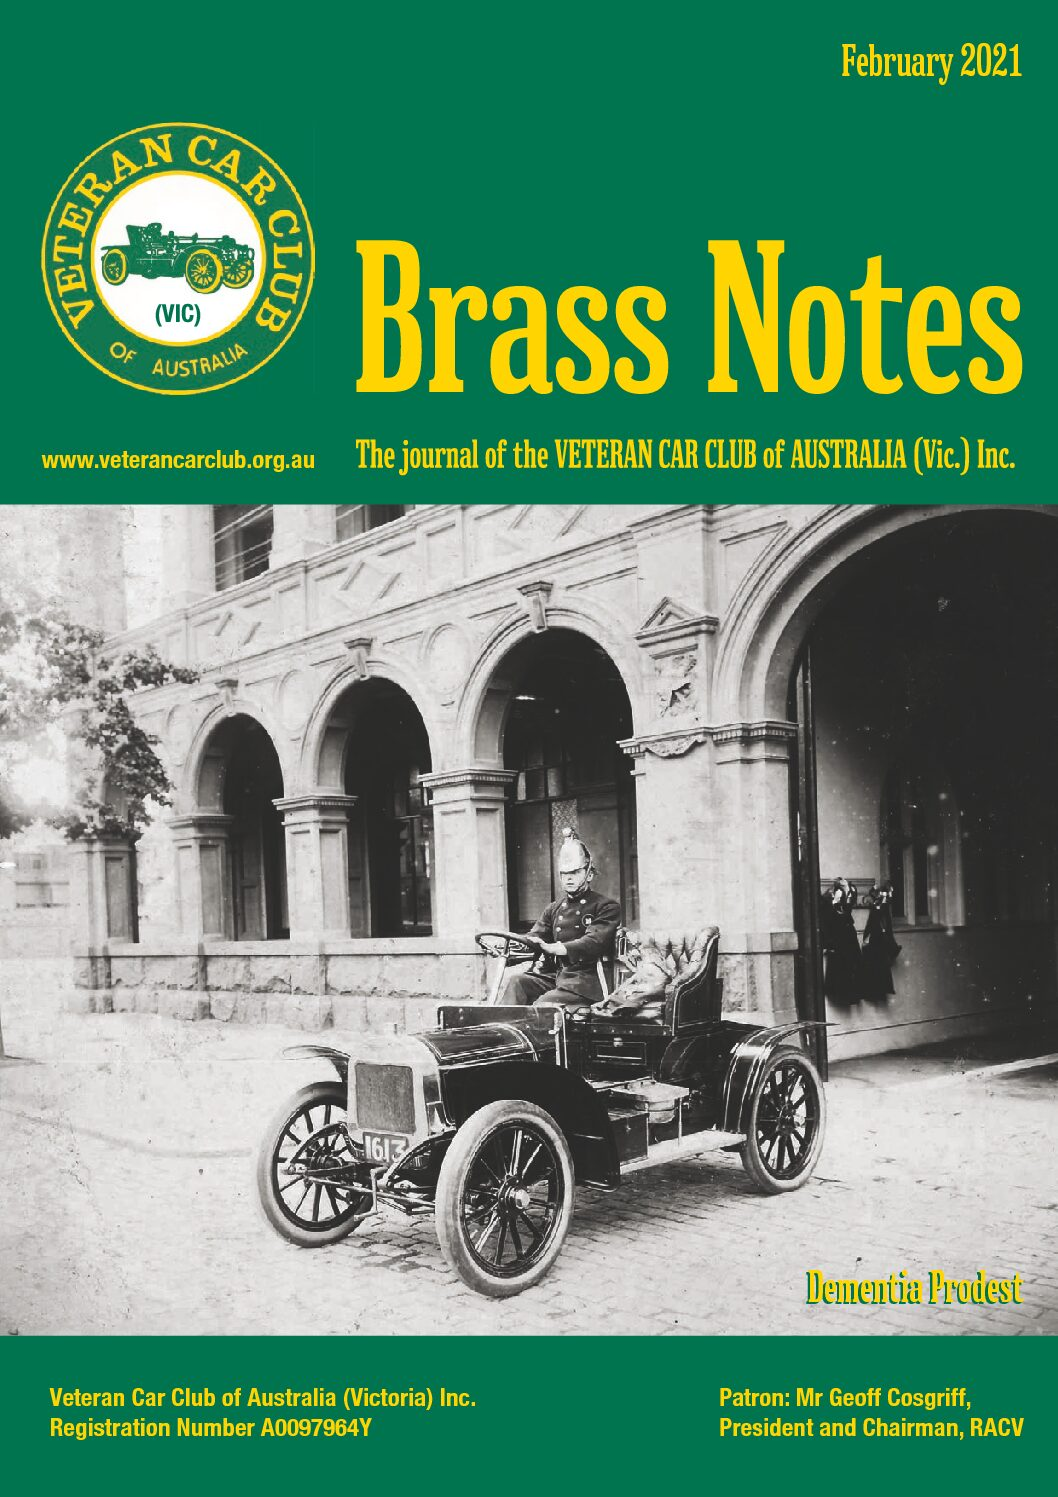 Brass Notes February 2021